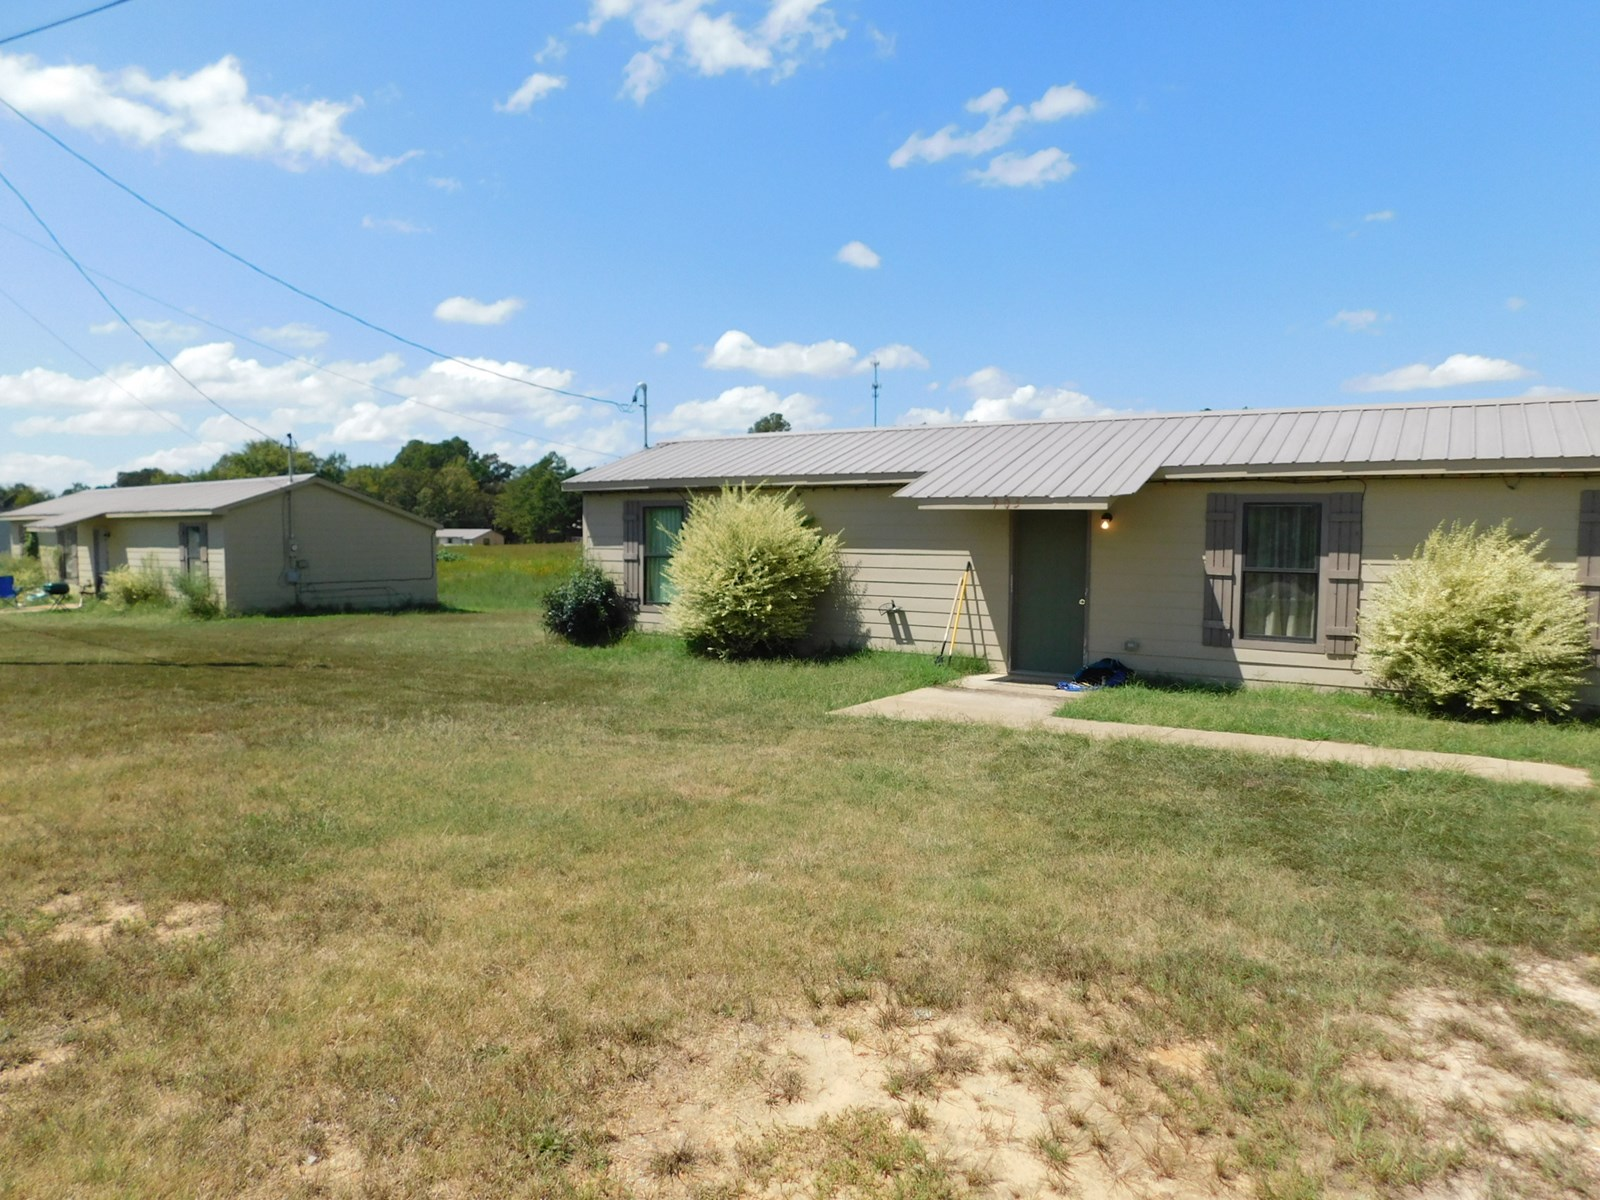 RENTAL PROPERTY FOR SALE IN HARDIN COUNTY TN, INVESTMENT